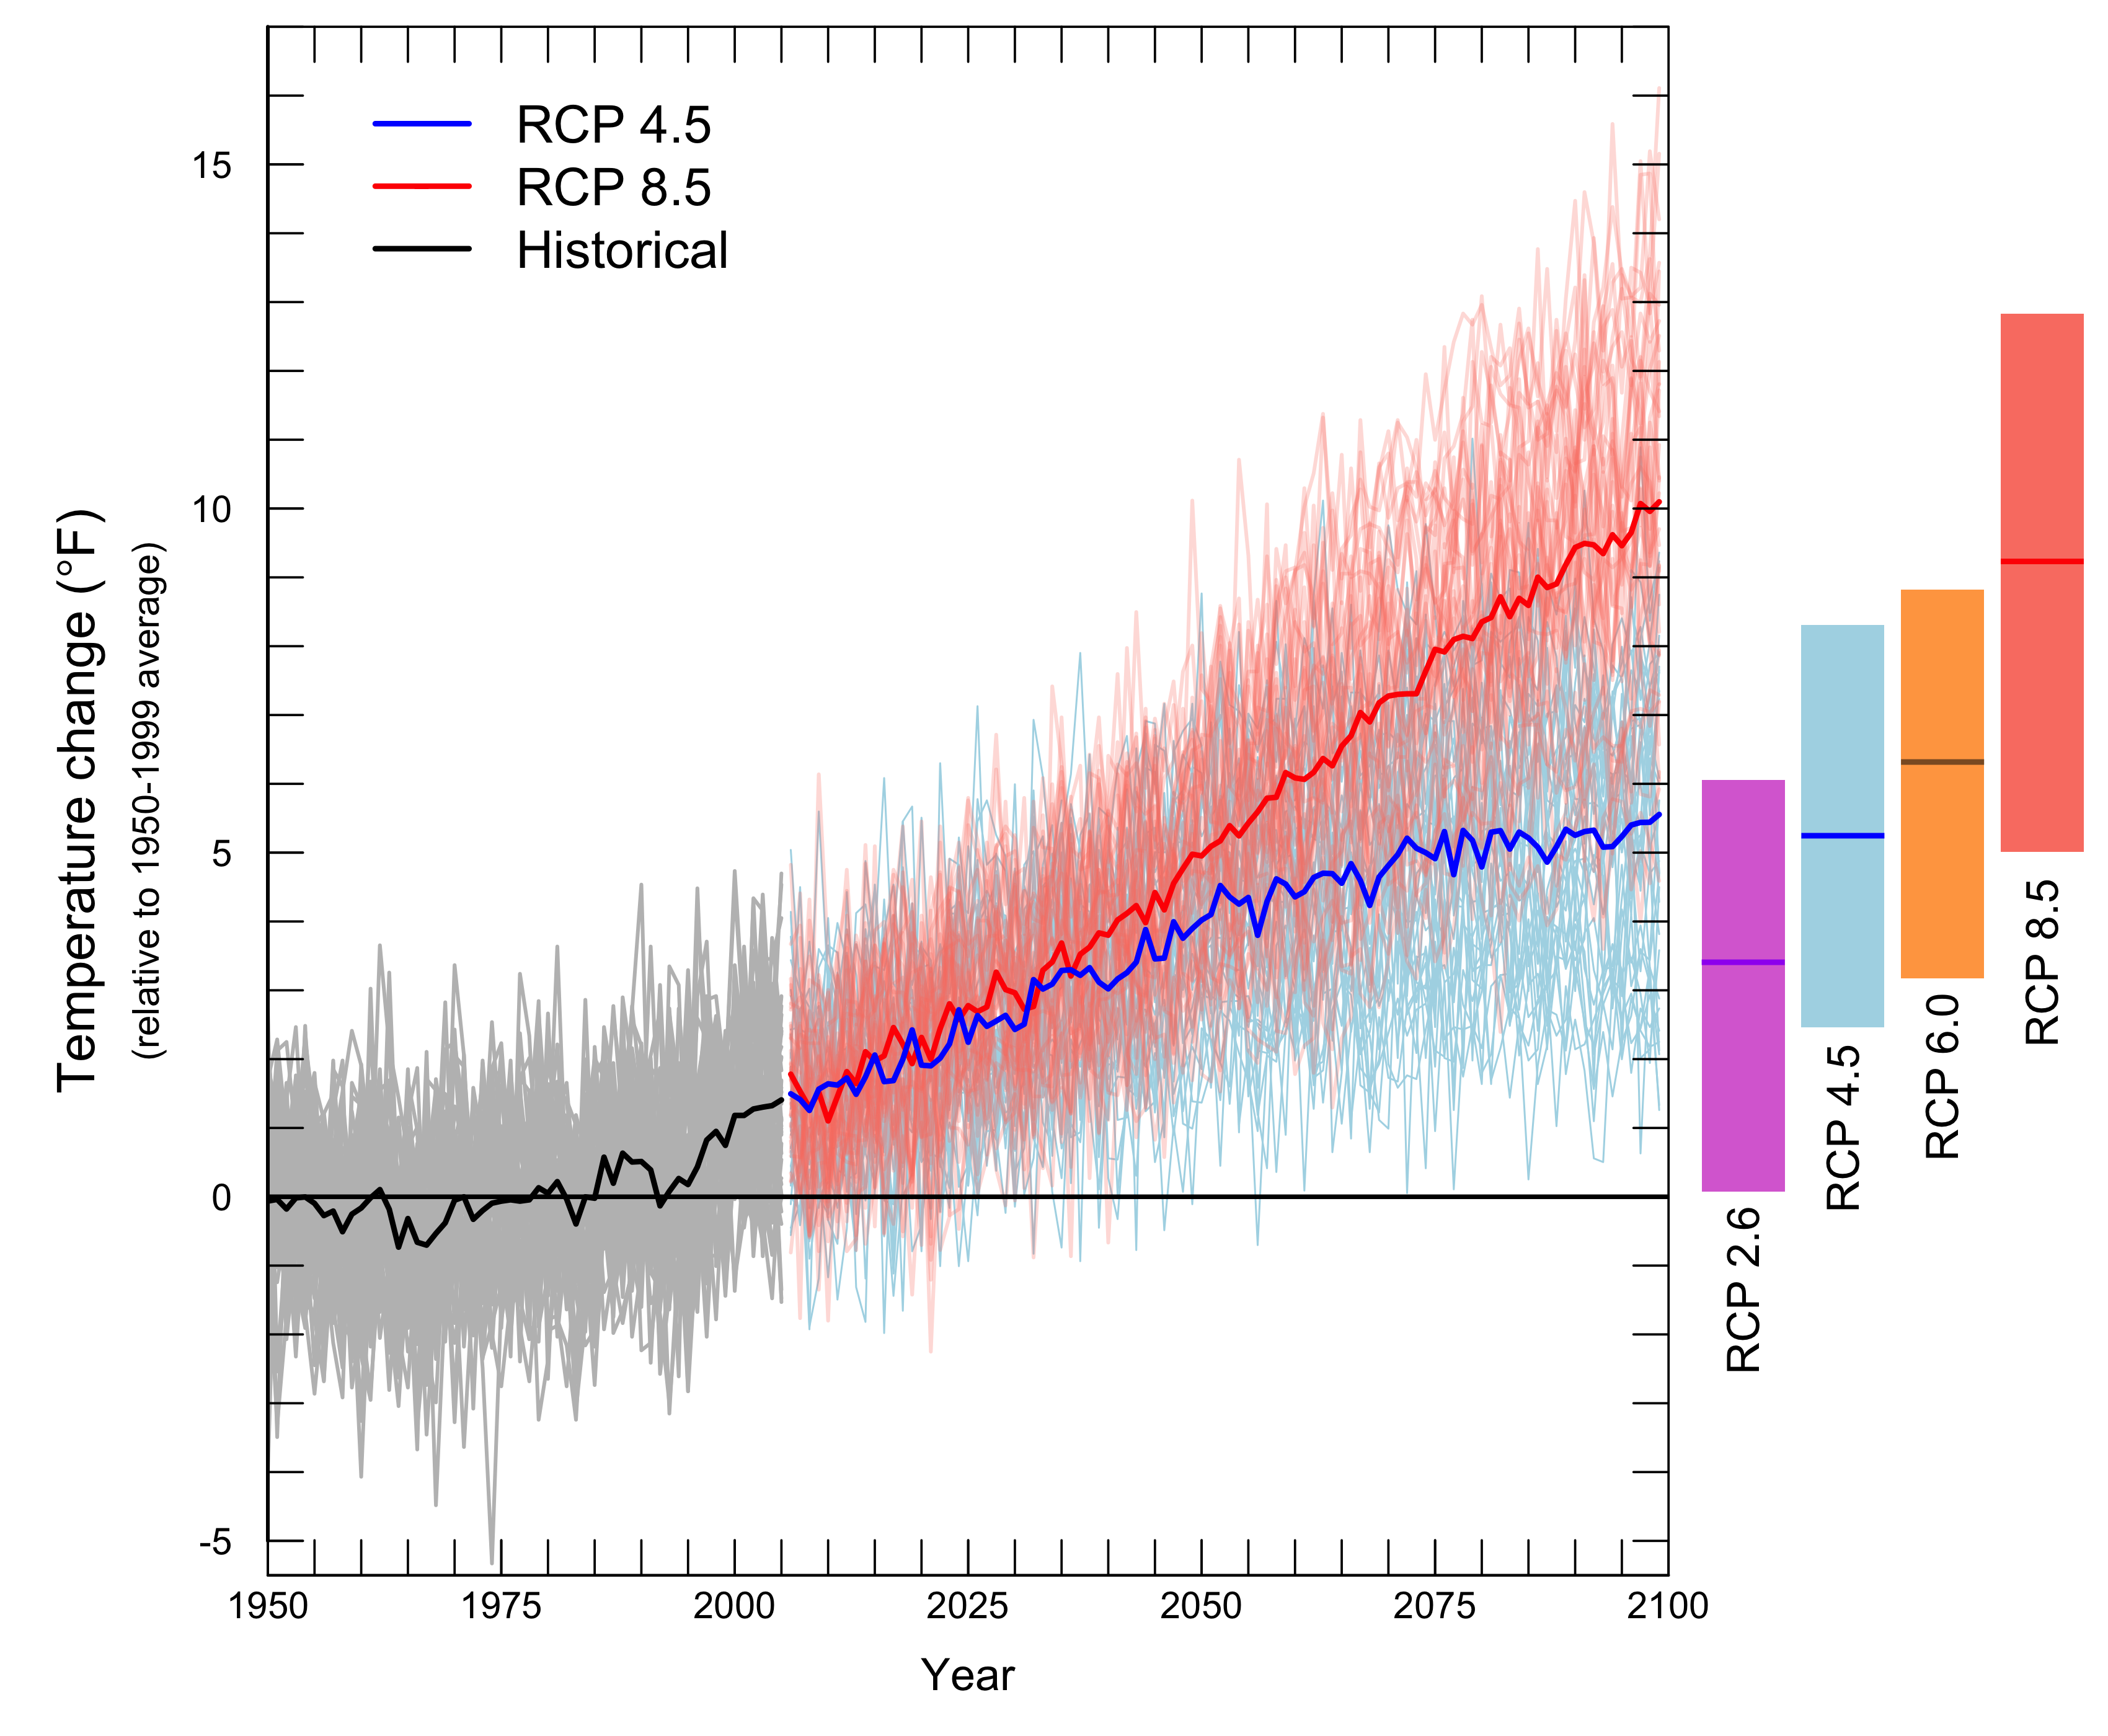 Figure 6. All scenarios project warming for the 21st century. The graph shows average yearly temperatures for the Pacific Northwest relative to the average for 1950-1999 (gray horizontal line). The black line shows the average simulated temperature for 1950–2011, while the grey lines show individual model results for the same time period. Thin colored lines show individual model projections for two emissions scenarios (low: RCP 4.5, and high: RCP 8.5 – see Section 3 for details), and thick colored lines show the average among models projections for each scenario. Bars to the right of the plot show the mean, minimum, and maximum change projected for each of the four emissions scenarios for 2081-2100, ranging from a very low (RCP 2.6) to a high (RCP 8.5) scenario. Note that the bars are lower than the endpoints from the graph, because they represent the average for the final two decades of the century, rather than the final value at 2100. Figure source: Climate Impacts Group, based on climate projections used in the IPCC 2013 report.